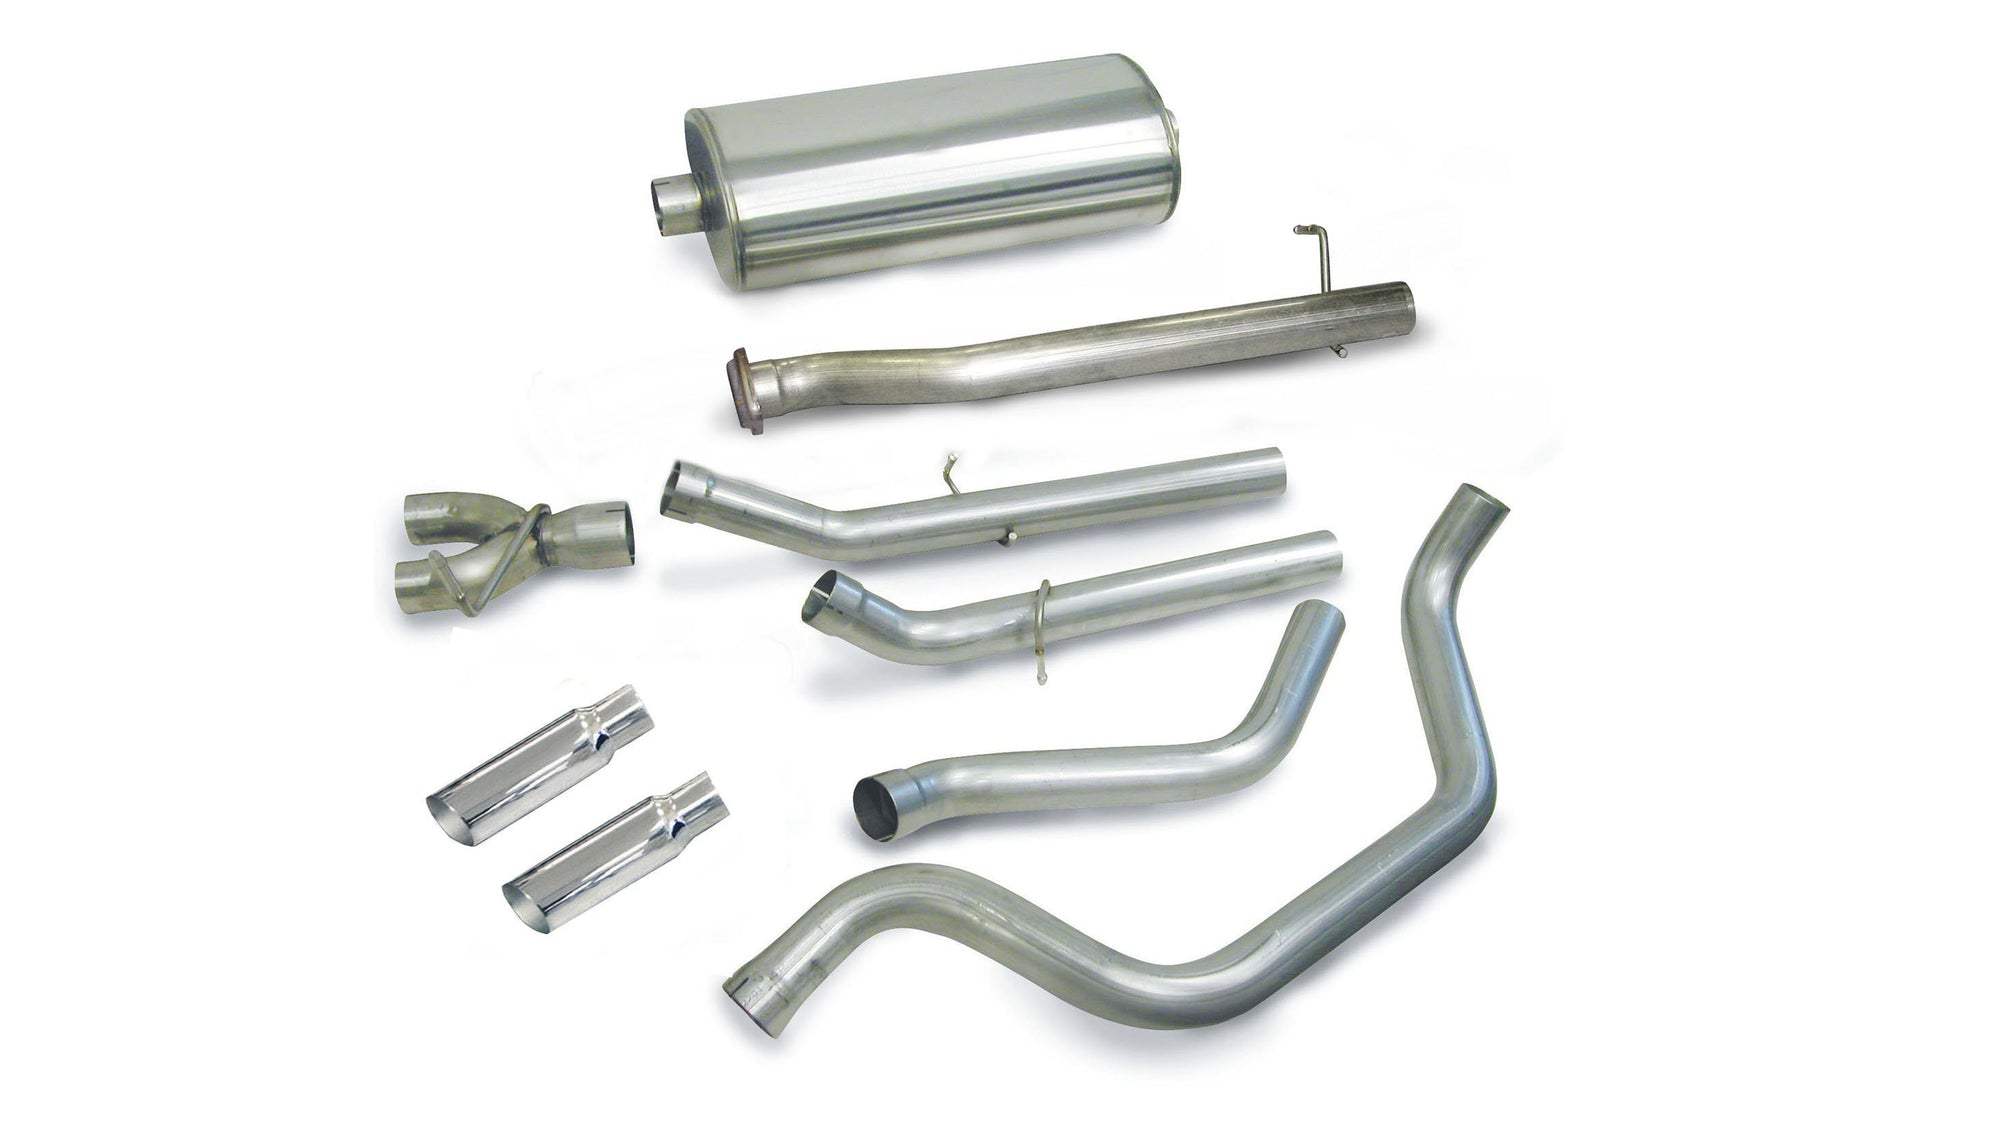 "dB Cat-Back Exhaust Polished / Sport / Dual Rear - Single 4in 1999-2006 Chevrolet Silverado, GMC Sierra, 4.8L, 5.3L, 6.0L V8 3.0"" Dual Rear Exit Catback Exhaust System with 4.0"" Tips  (24275) Sport Sound Level"